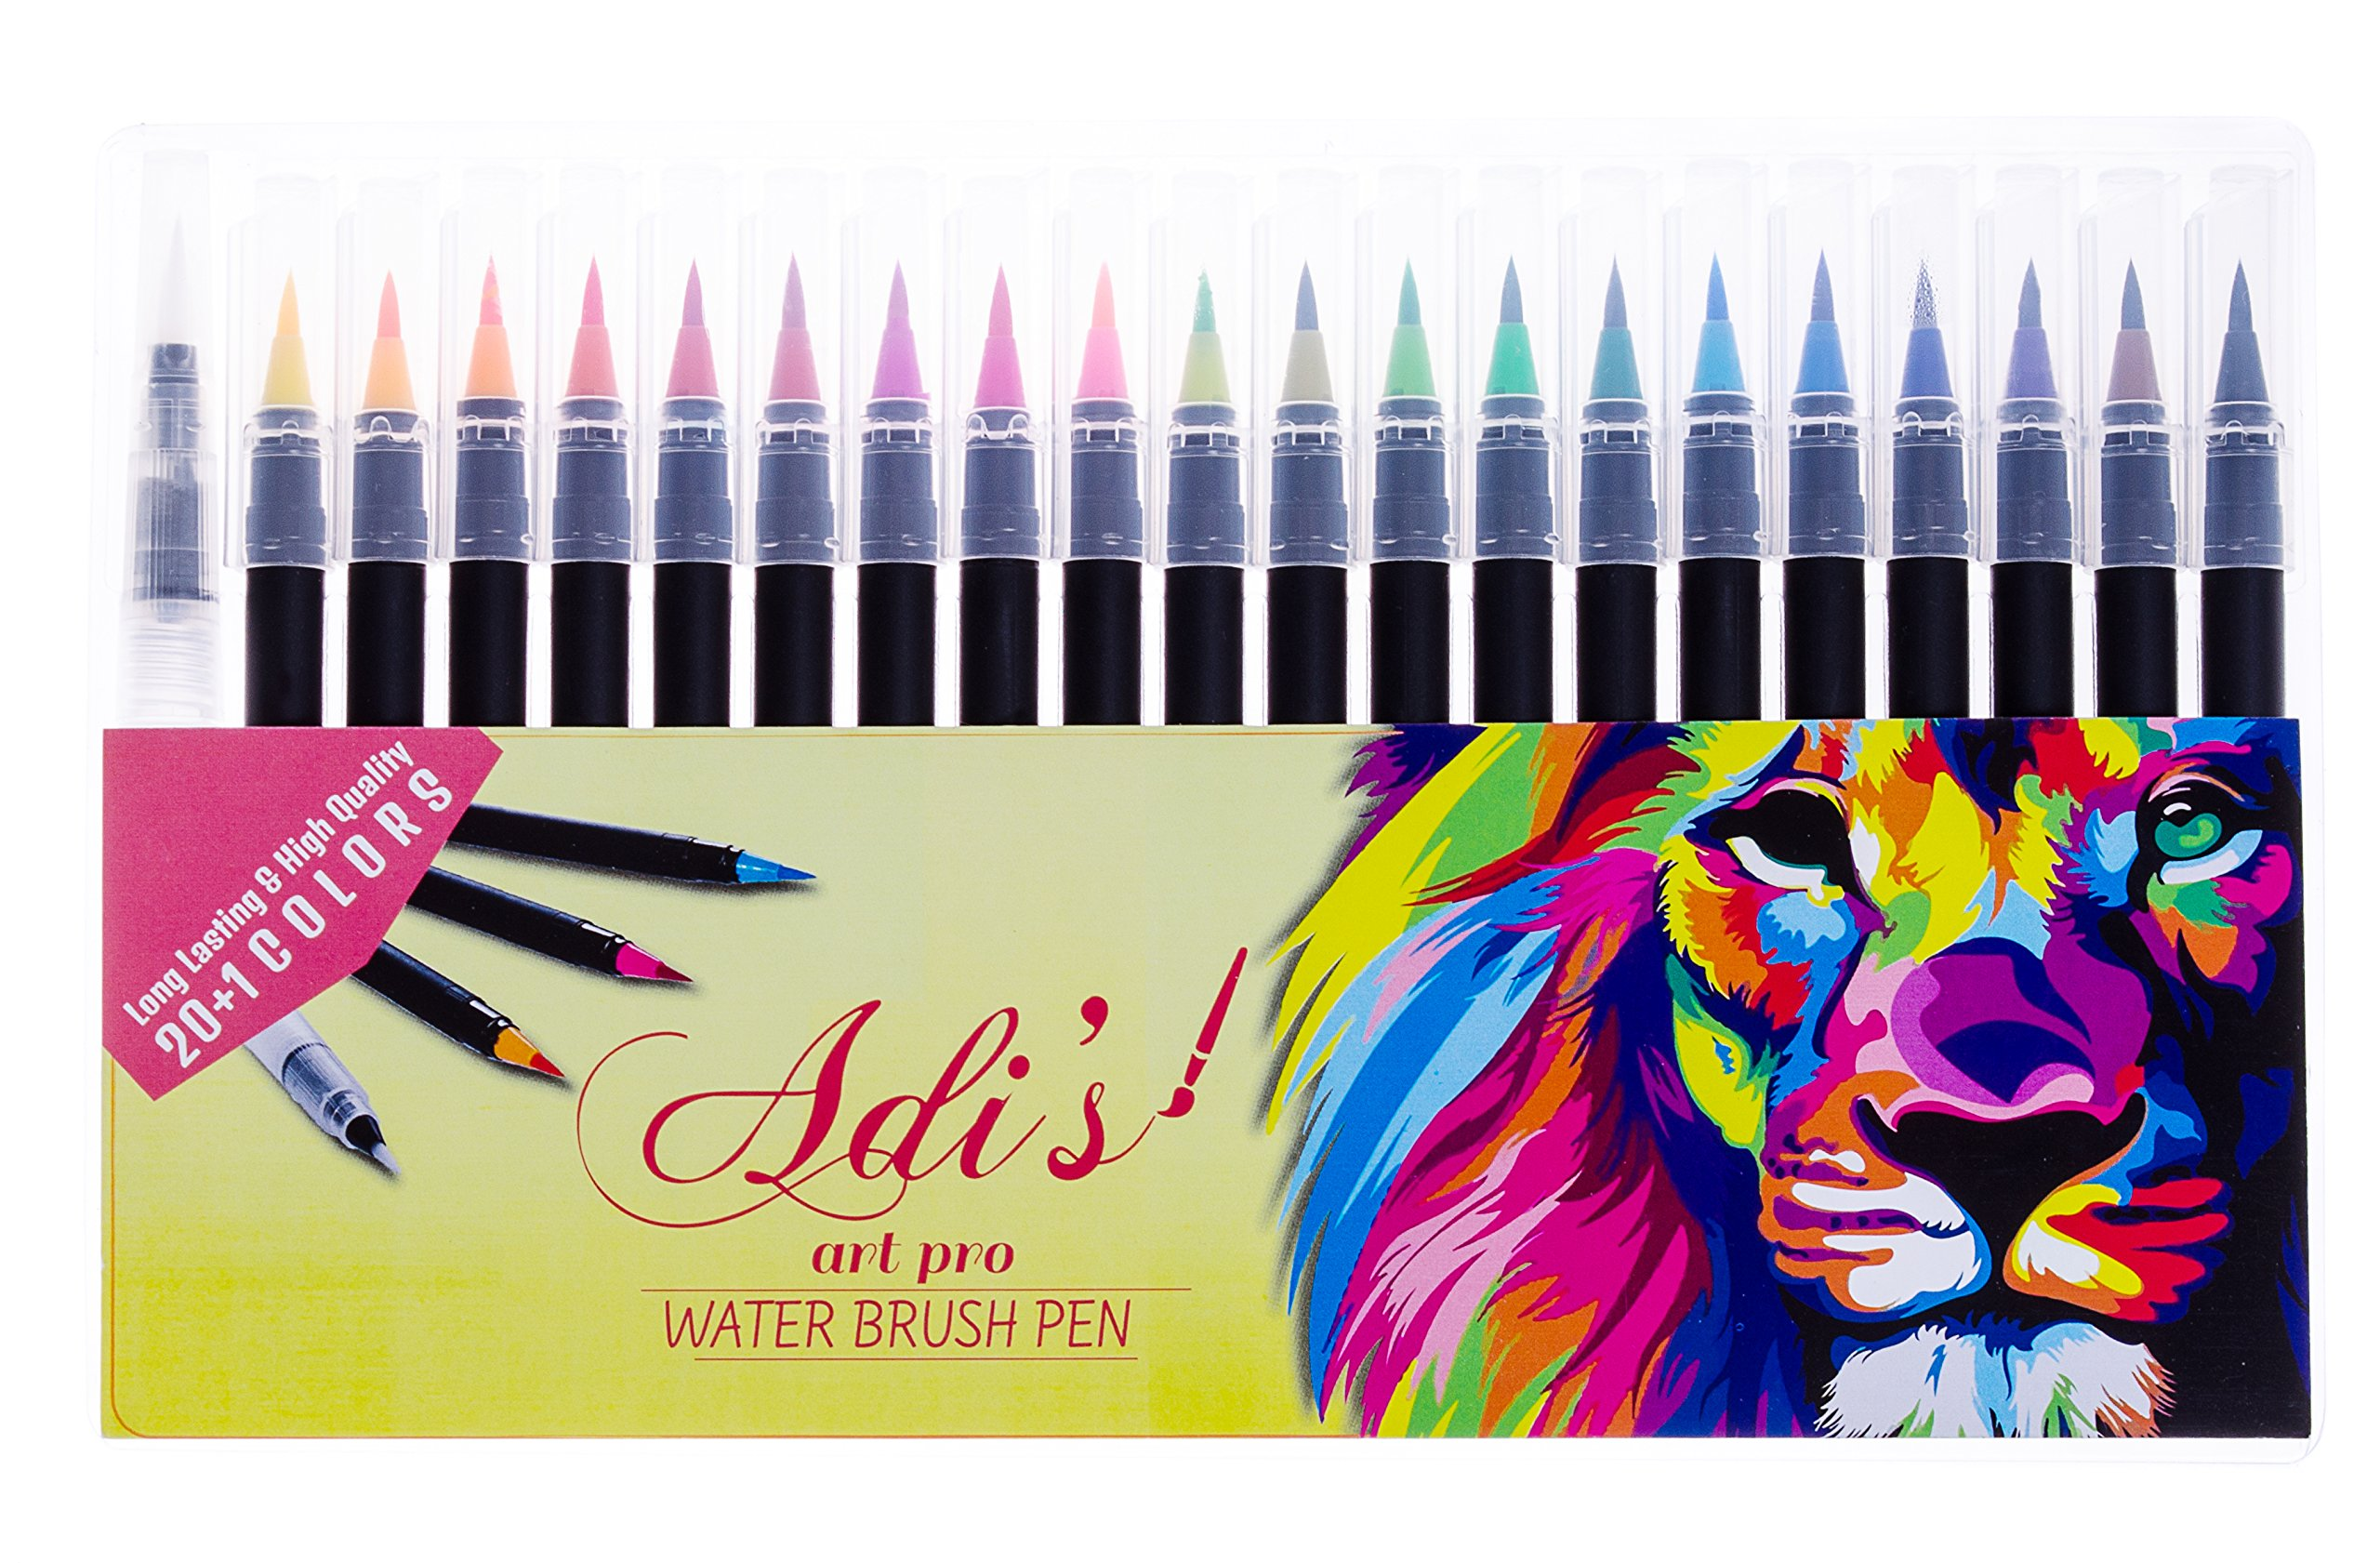 Watercolor Brush Pen Marker 20 Set & 1 Real Brush Water Pens - Fine & Flexible Tips, ErgoLock Caps, Vibrant &Bold Colors -for Drawing, Calligraphy, Sketching, Coloring by Adi's art pro